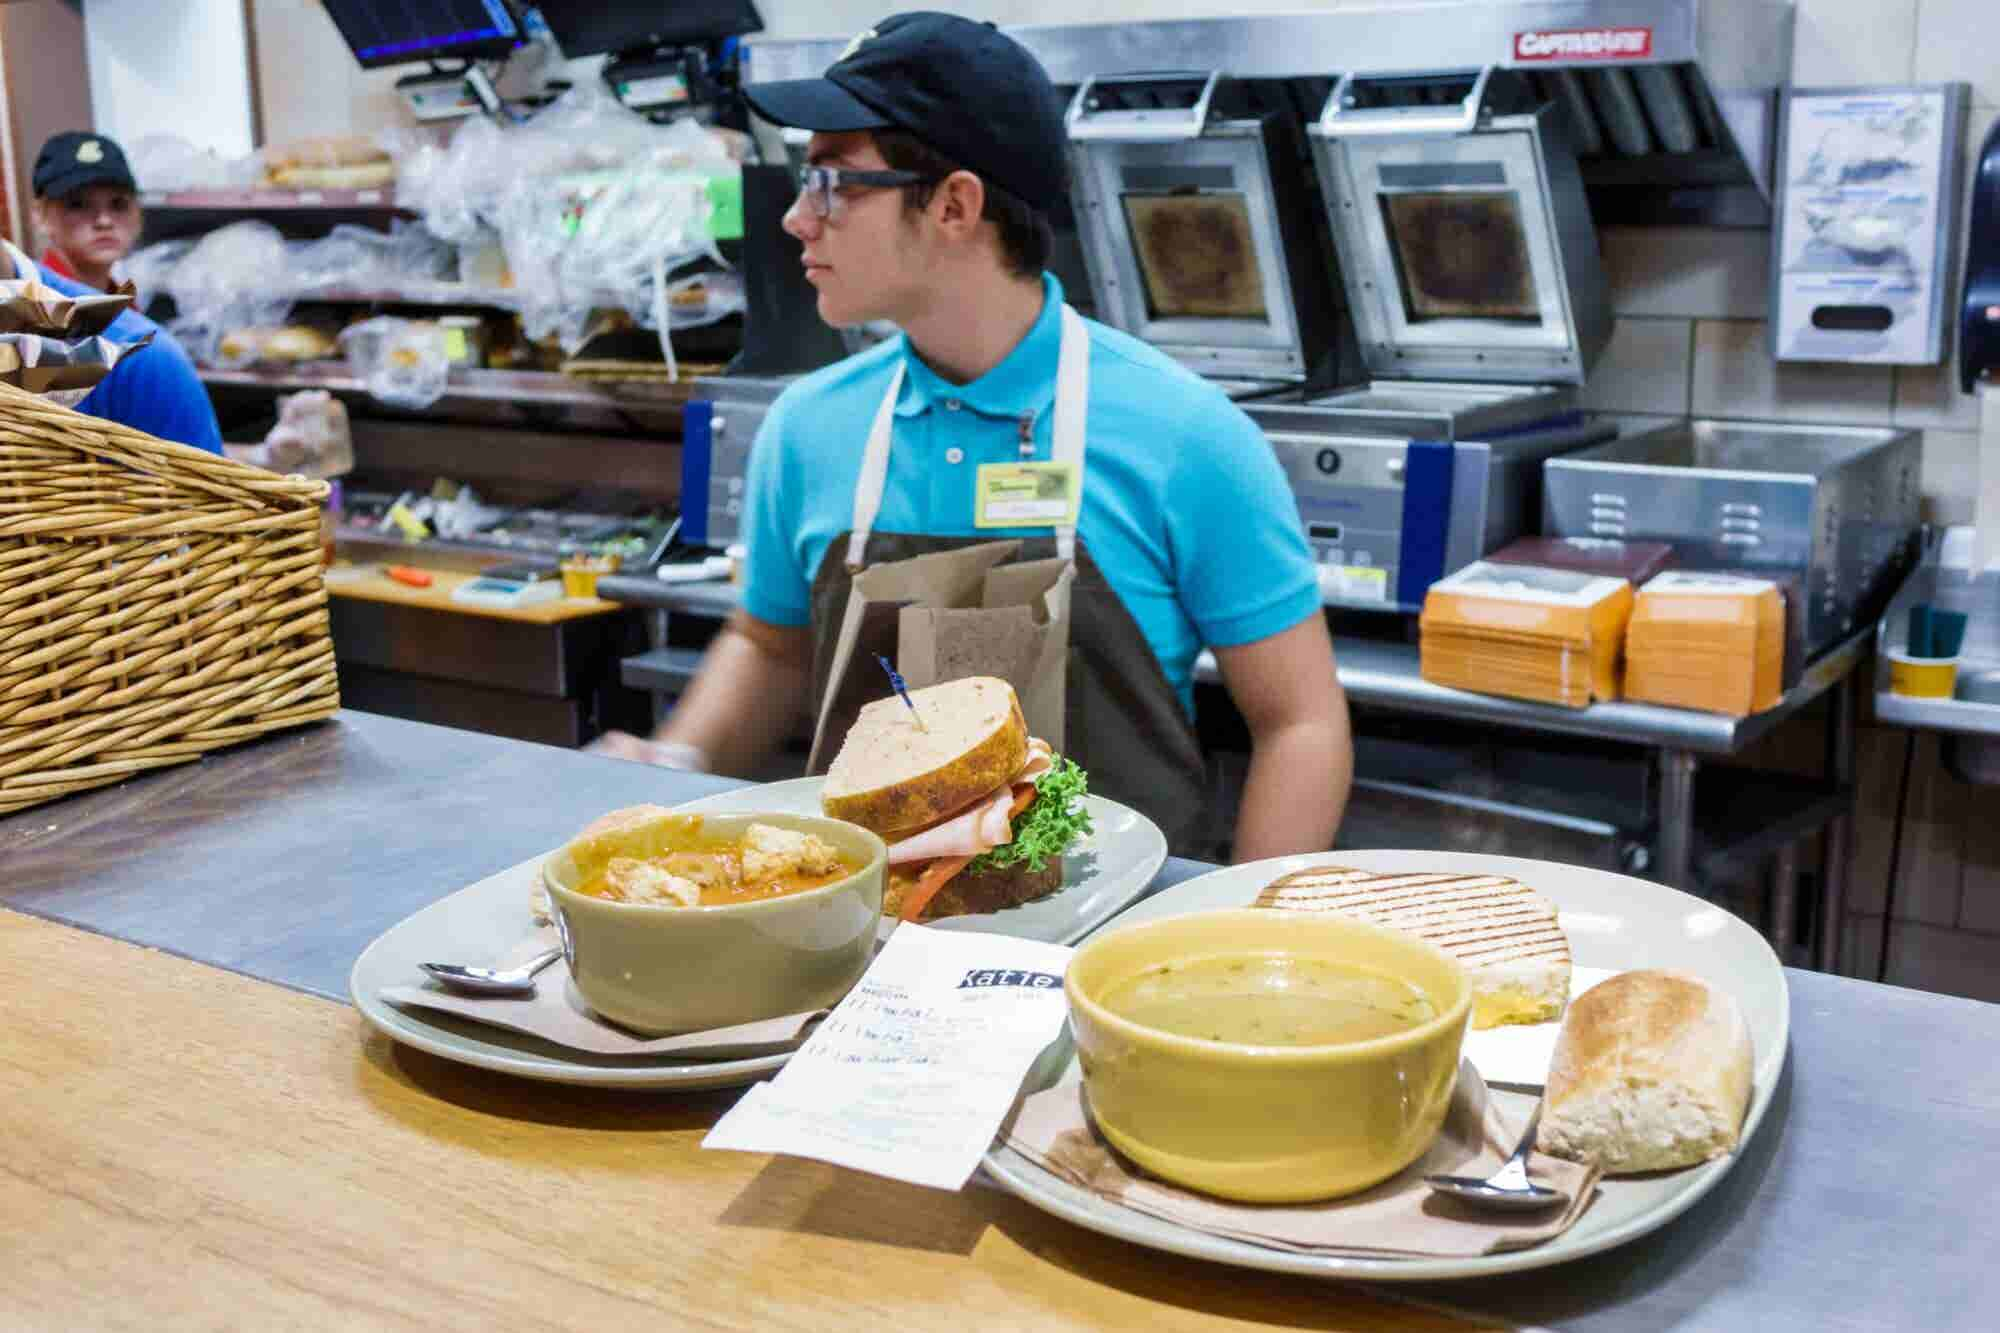 As Restaurant Chains End 'No-Poach' Policies, How Will Franchisees Retain Trained Employees?